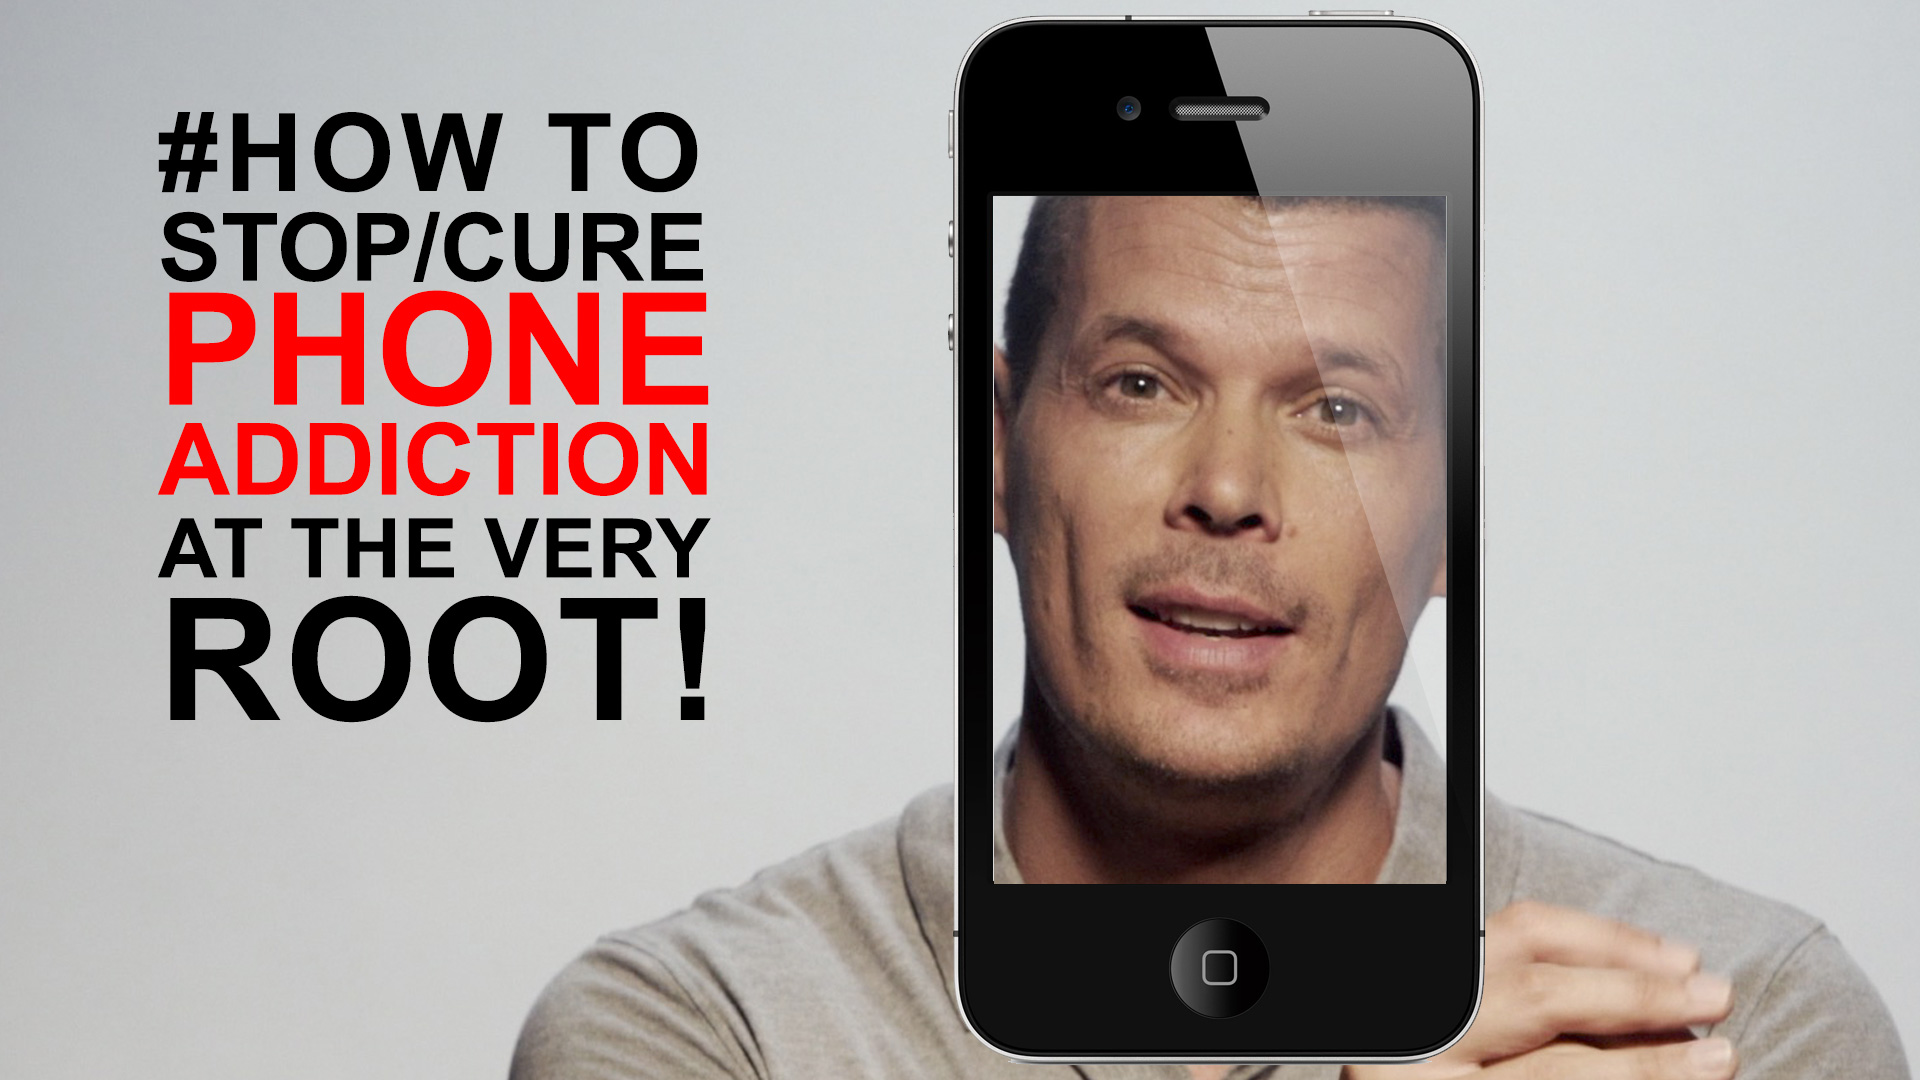 How to stop phone addiction? #1 Real cause revealed here!